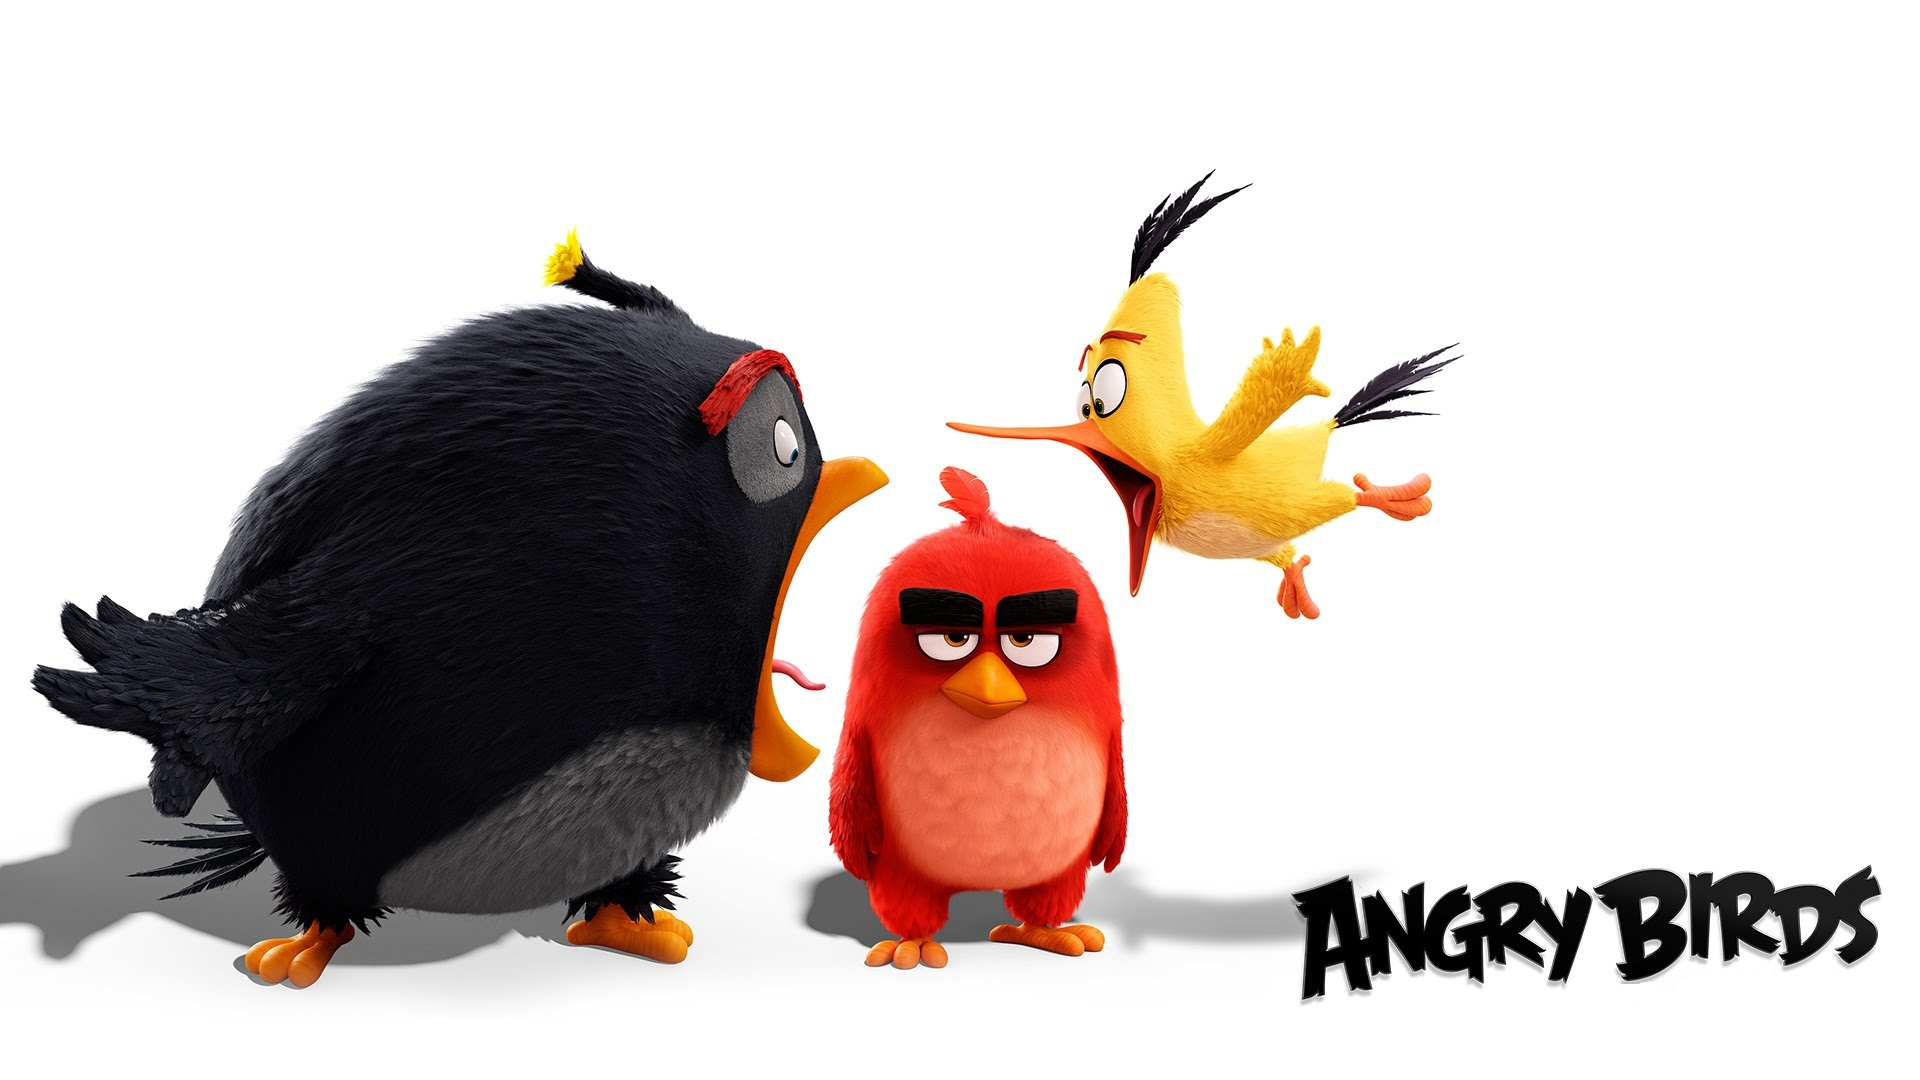 angry birds wallpapers images photos pictures backgrounds. Black Bedroom Furniture Sets. Home Design Ideas